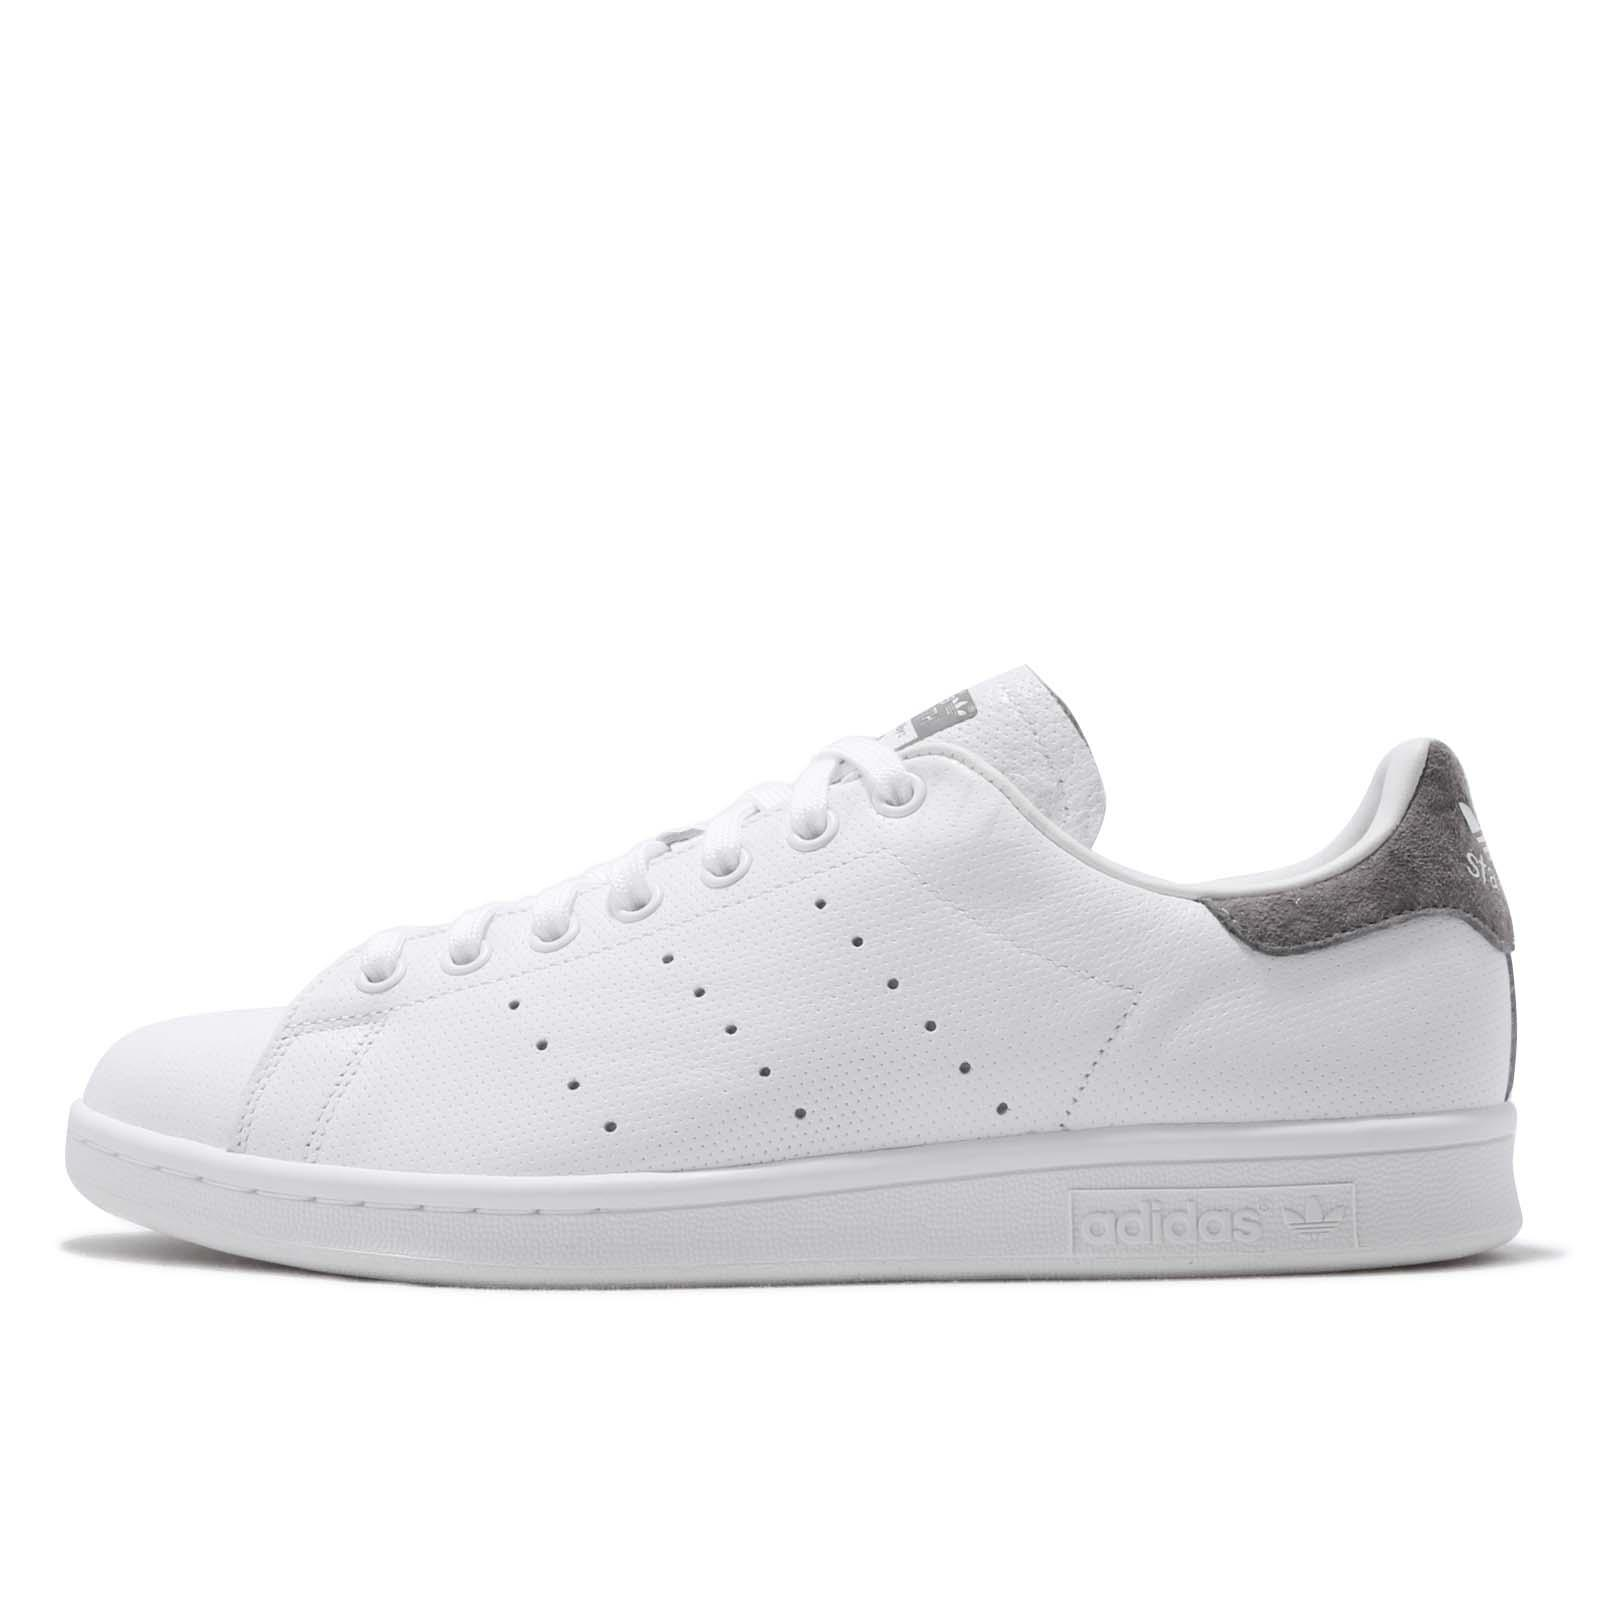 a586458d3cb adidas Originals Stan Smith White Grey Men Classic Casual Shoes Sneakers  B41470